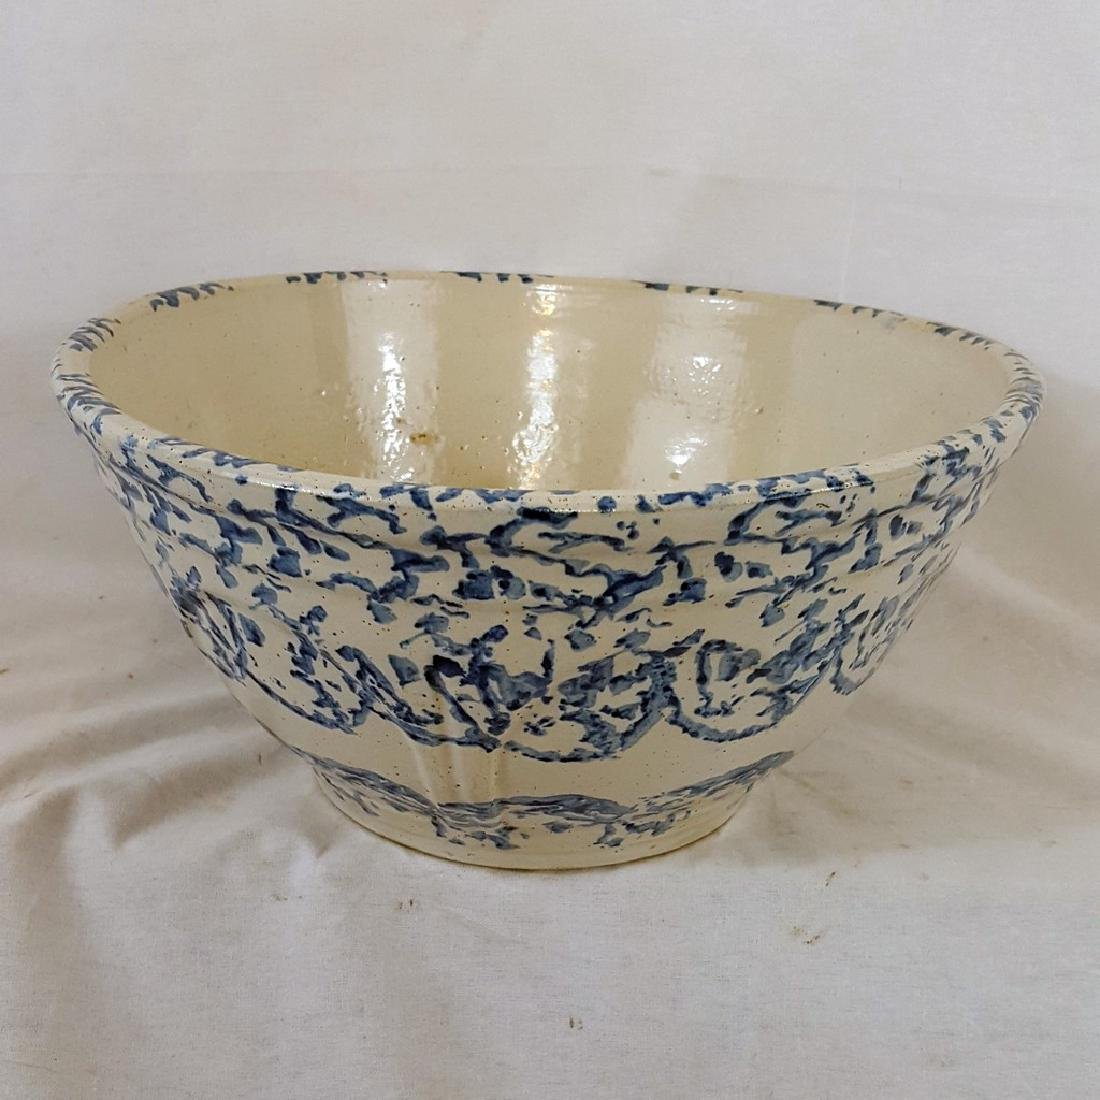 Mint Blue Spongeware Bowl Ca 1880-1900